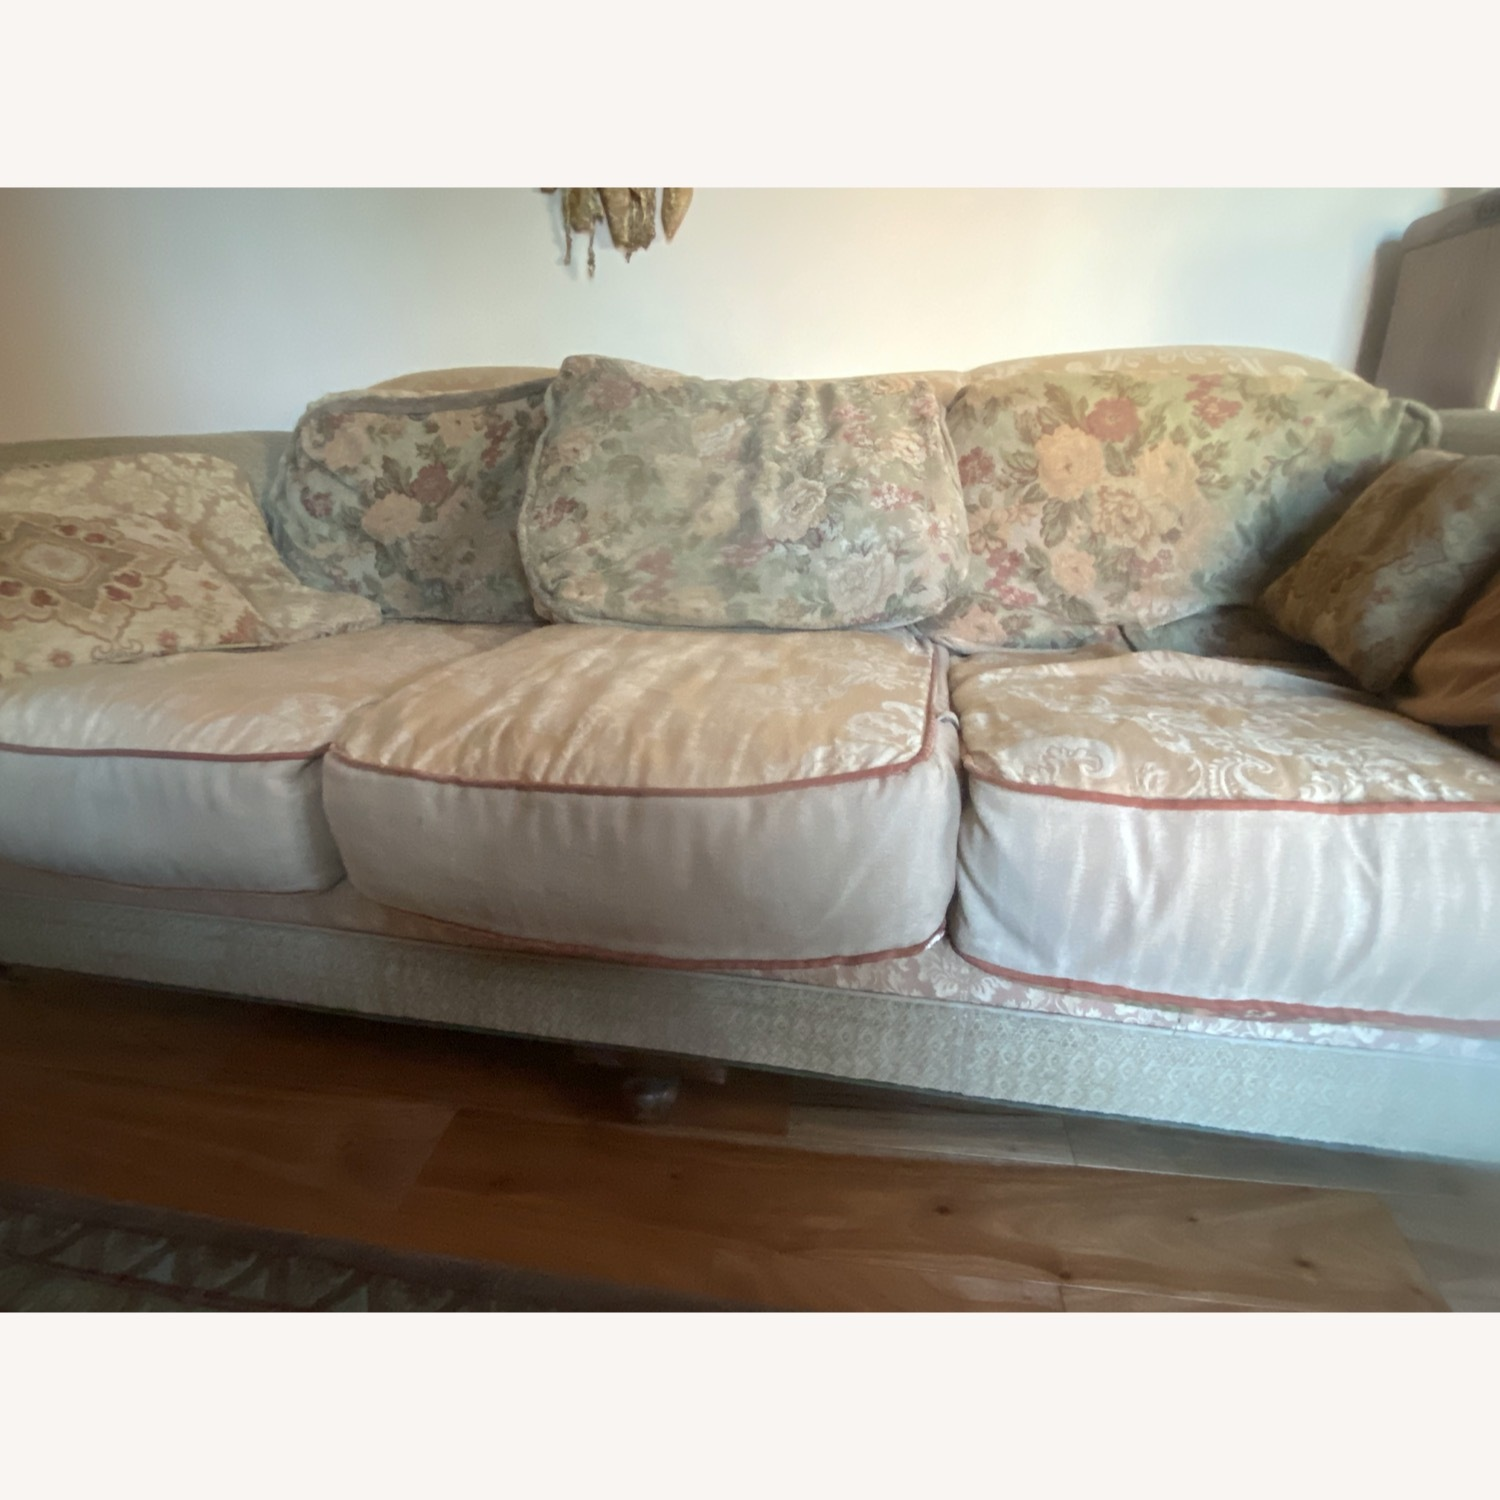 Domain Ornate Super Comfortable Couch Art Deco in Style - image-4